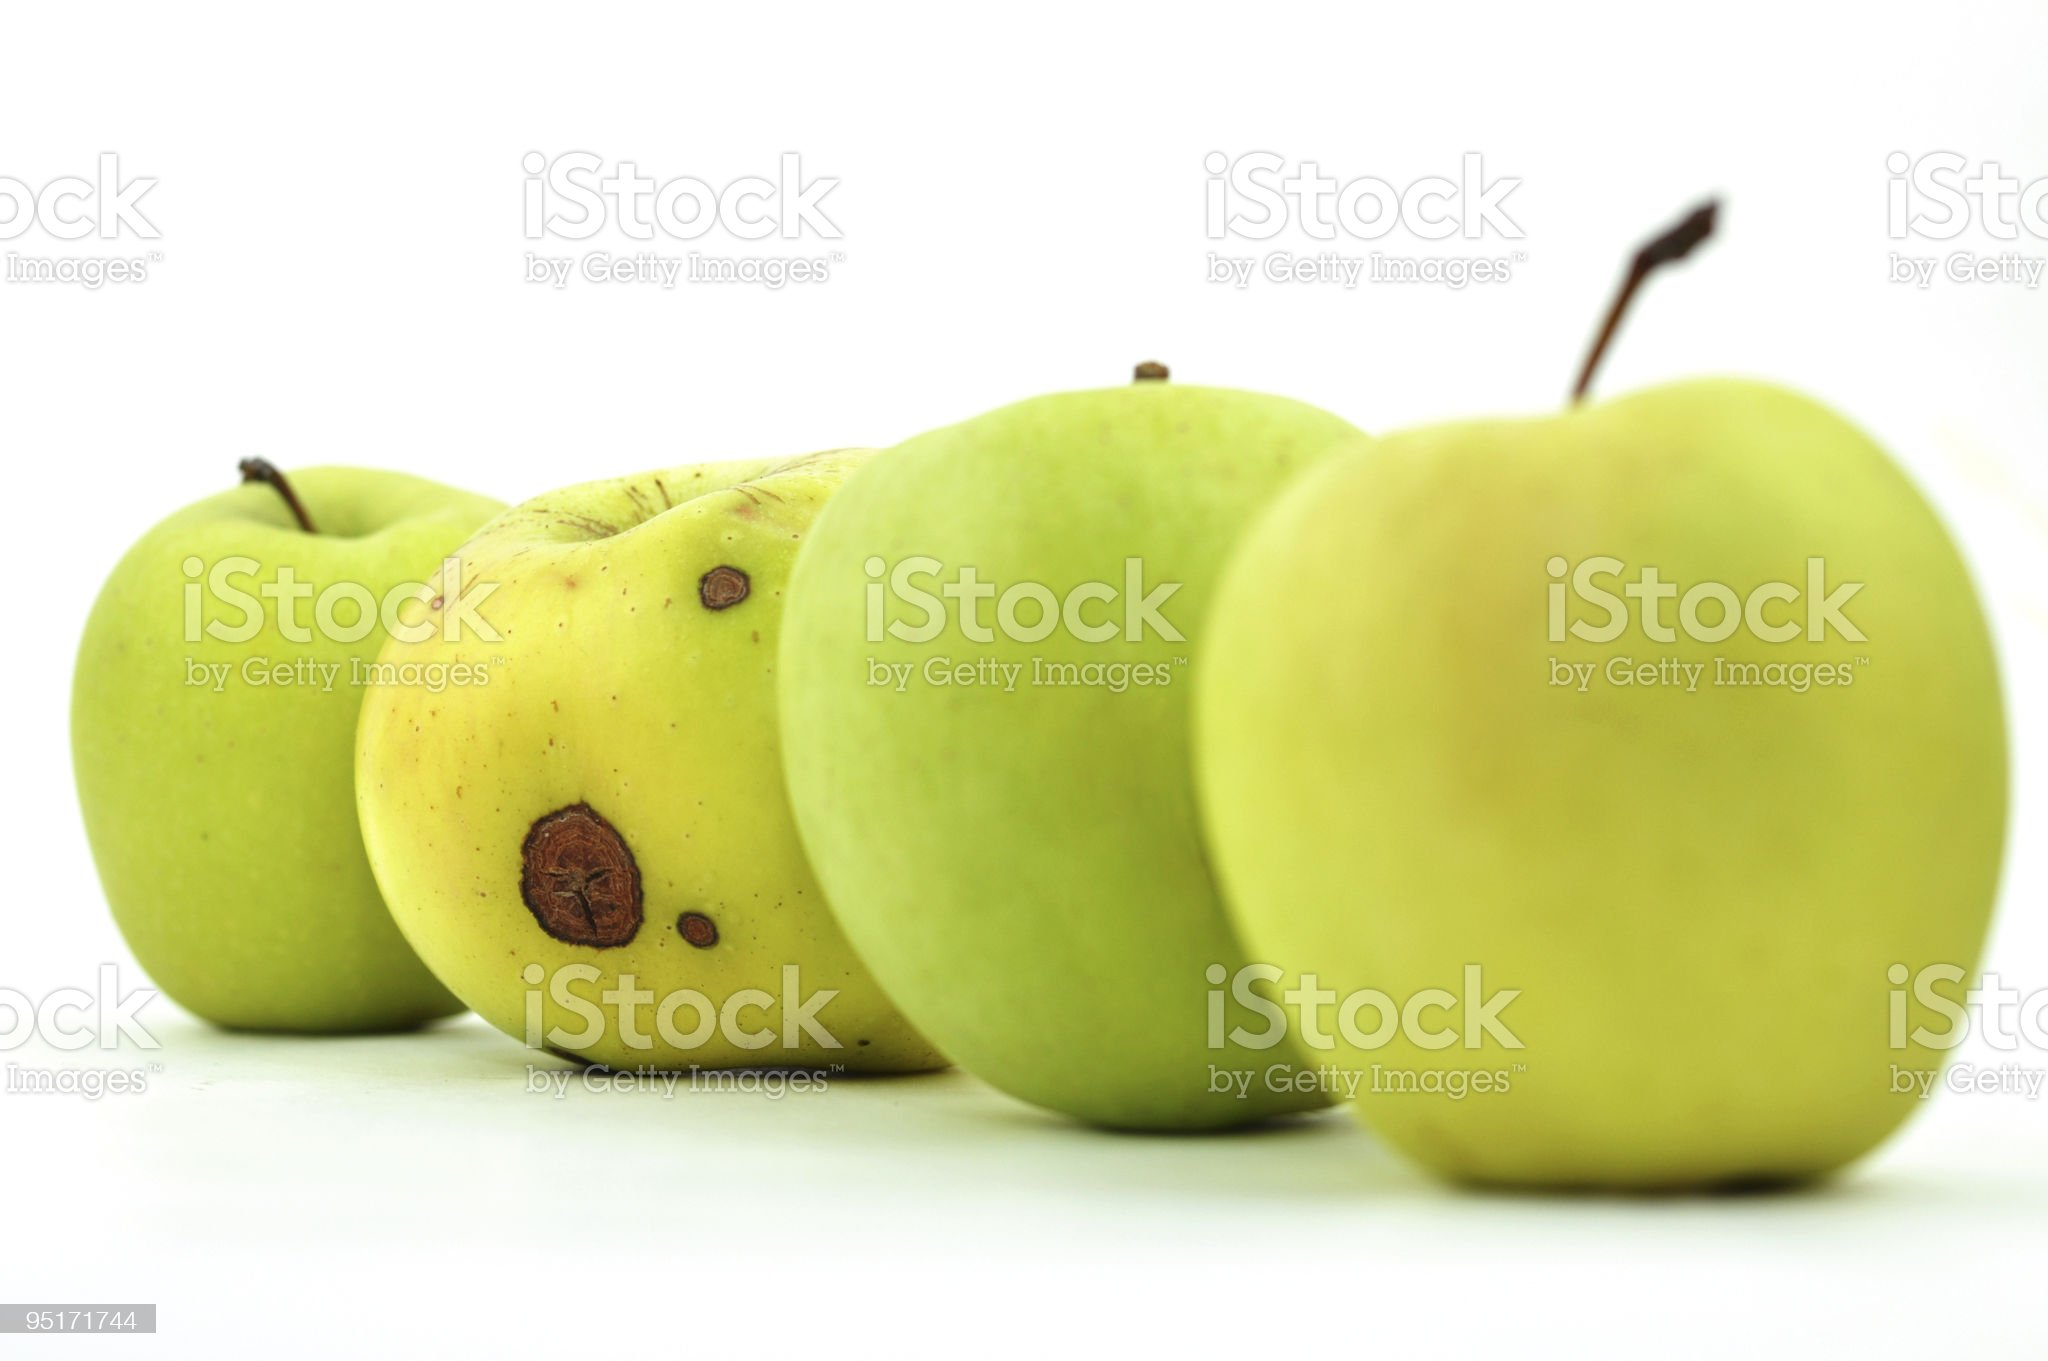 Rotten Apple between Perfect Ones royalty-free stock photo